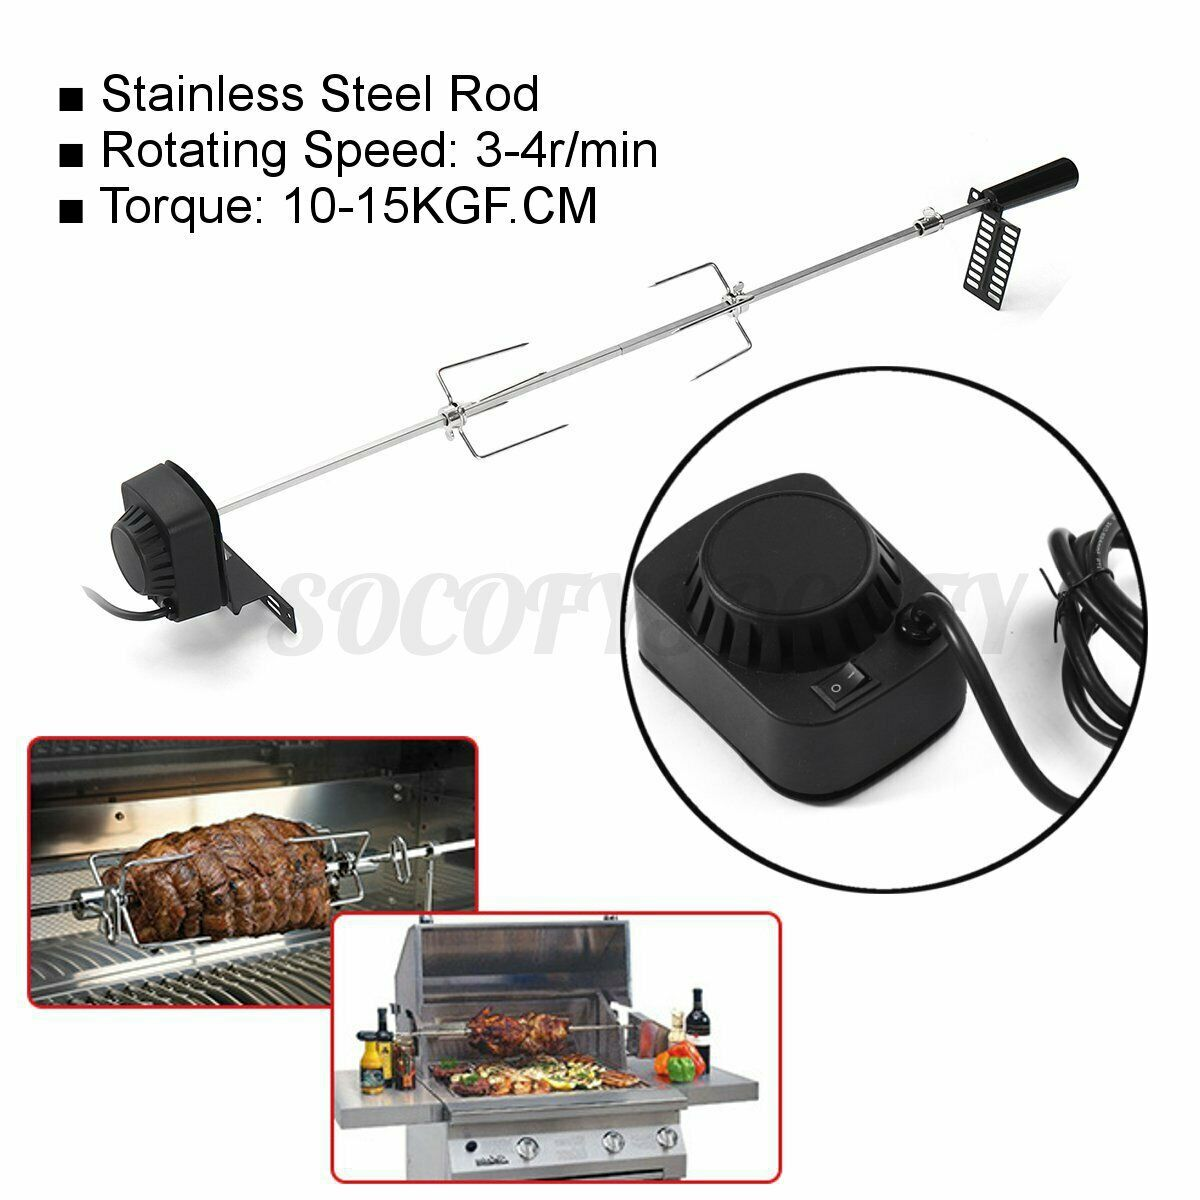 Yardwe Stainless Steel Grill Rotisserie Forks Meat Spit Rods Barbecue Rotating Universal Rotisserie Grill System for BBQ